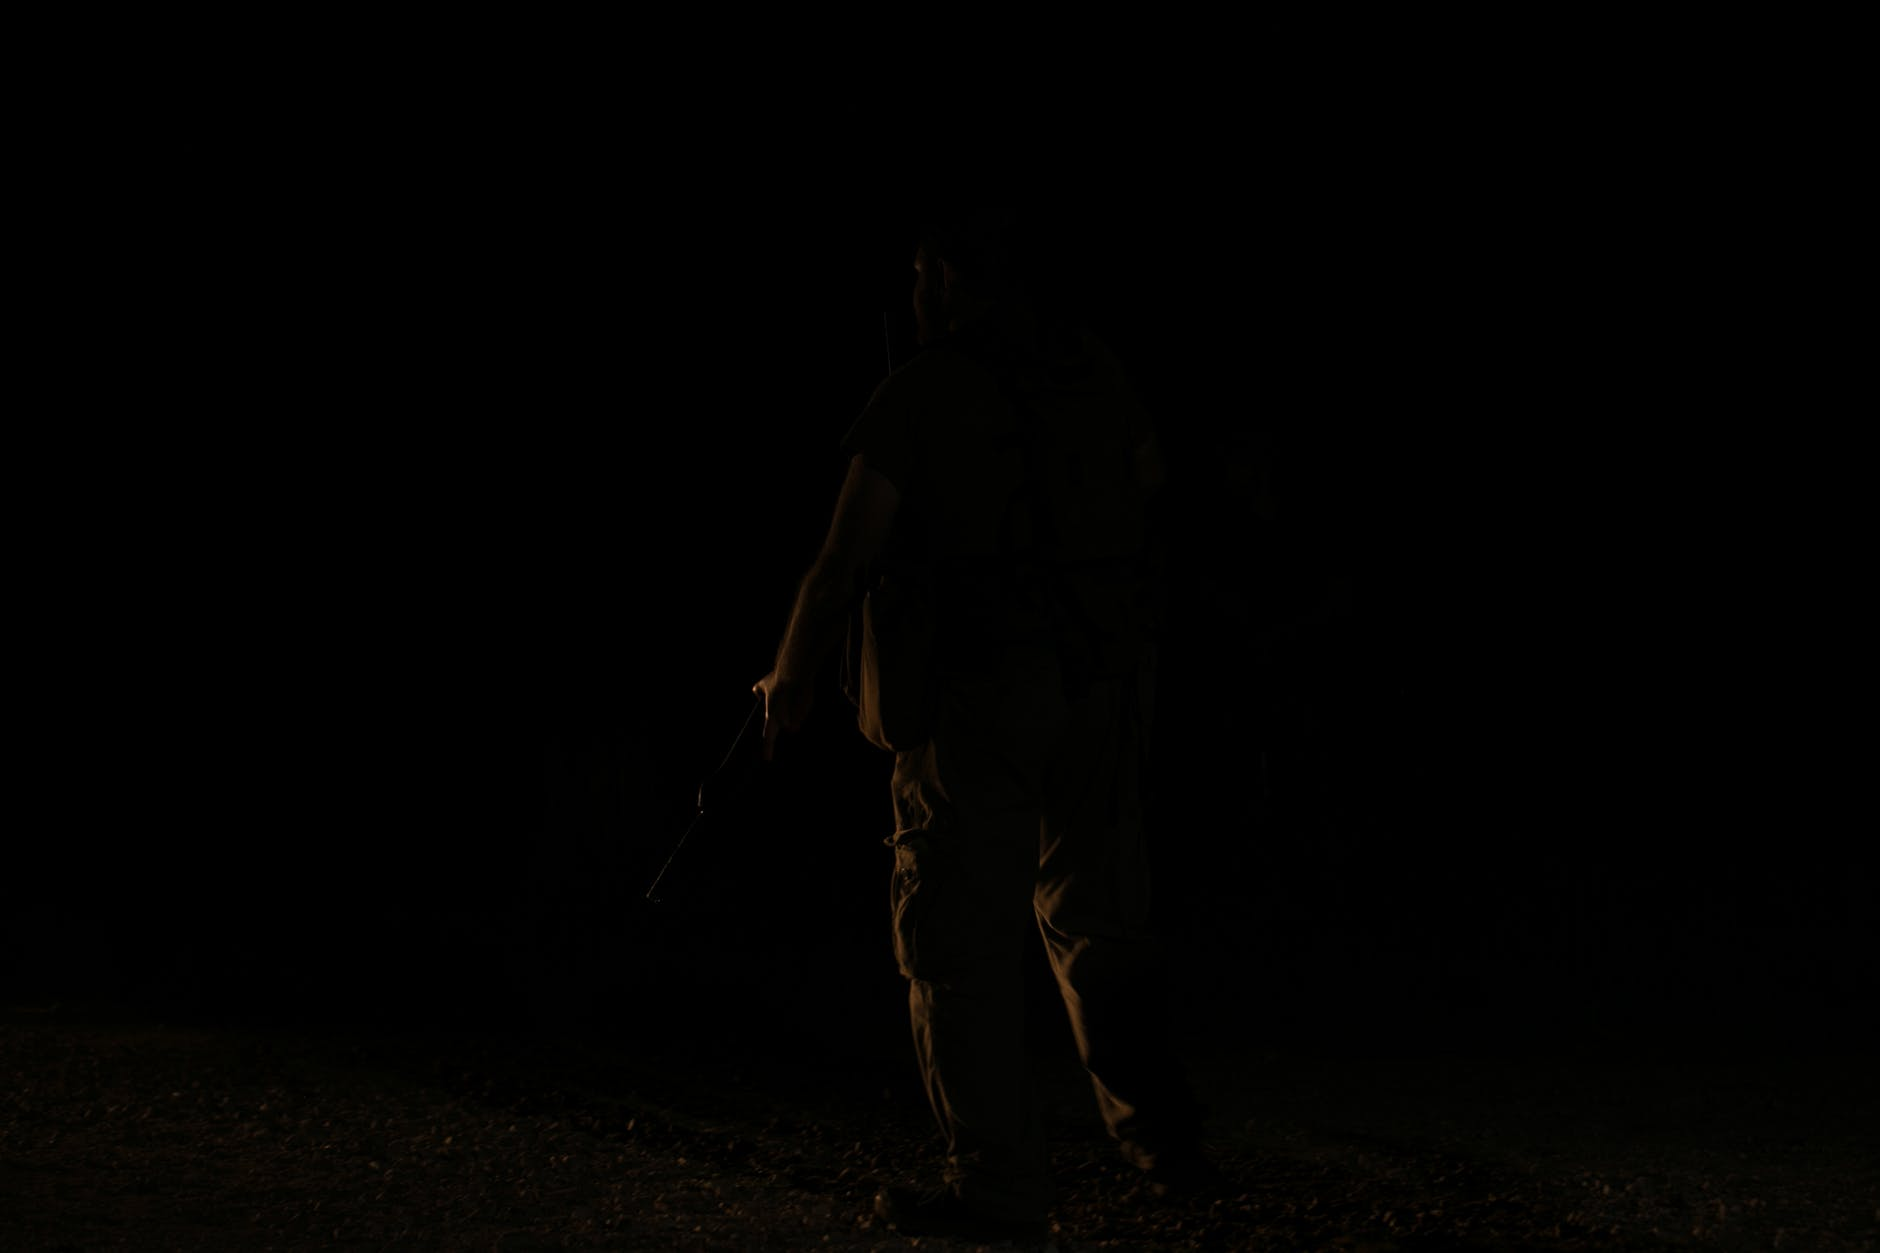 Person standing in the darkness